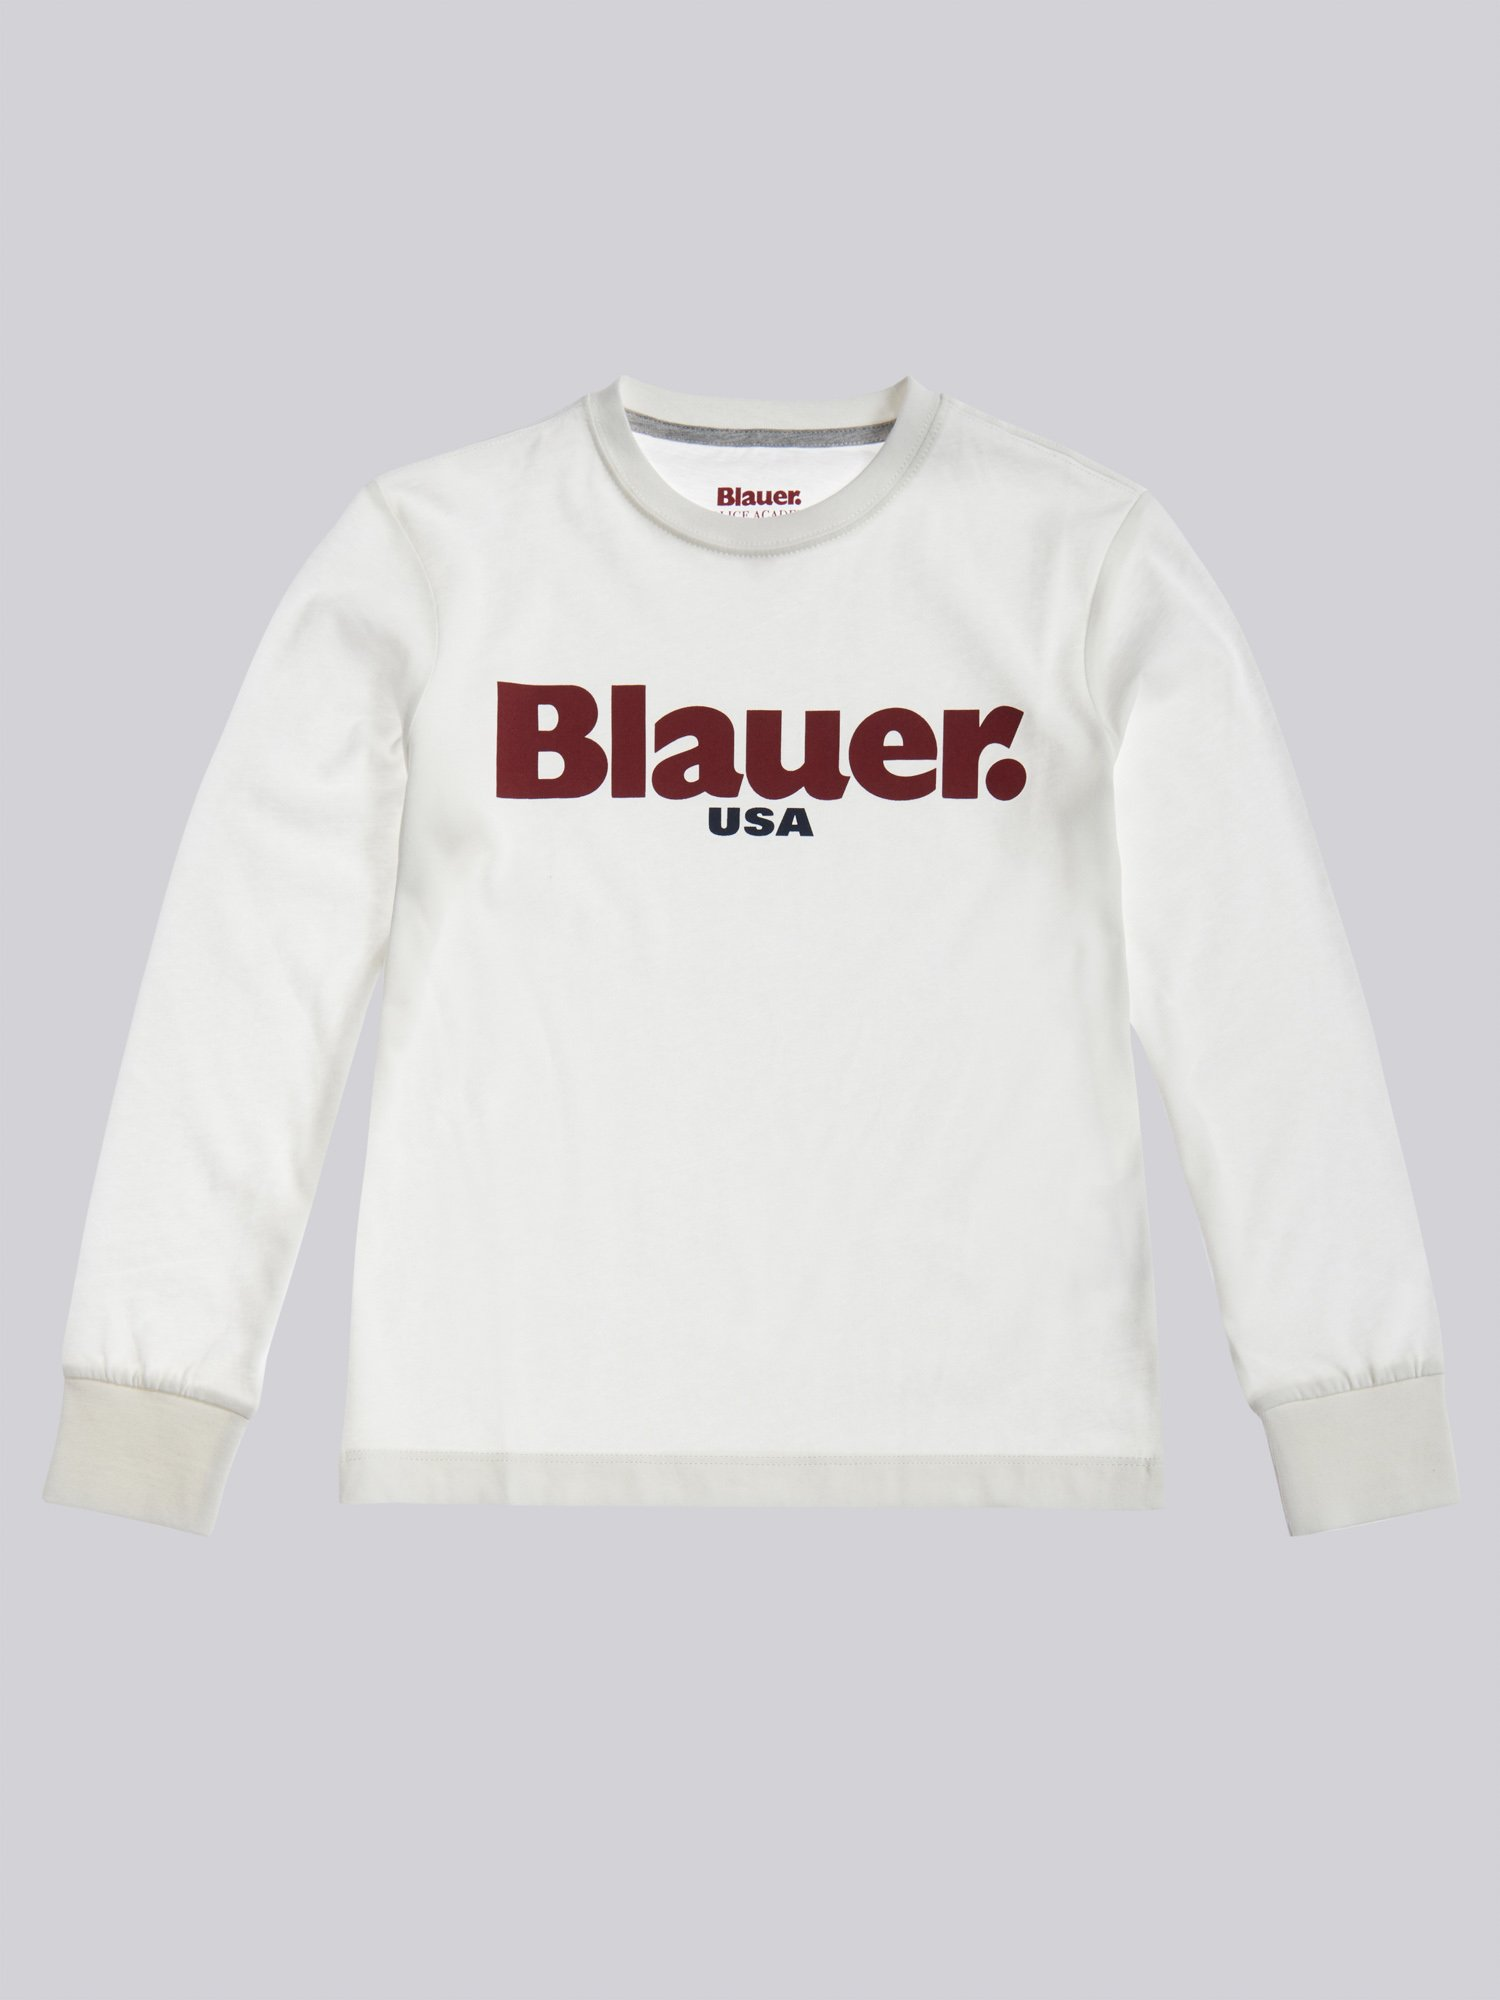 BLAUER LONG SLEEVE T-SHIRT - Blauer